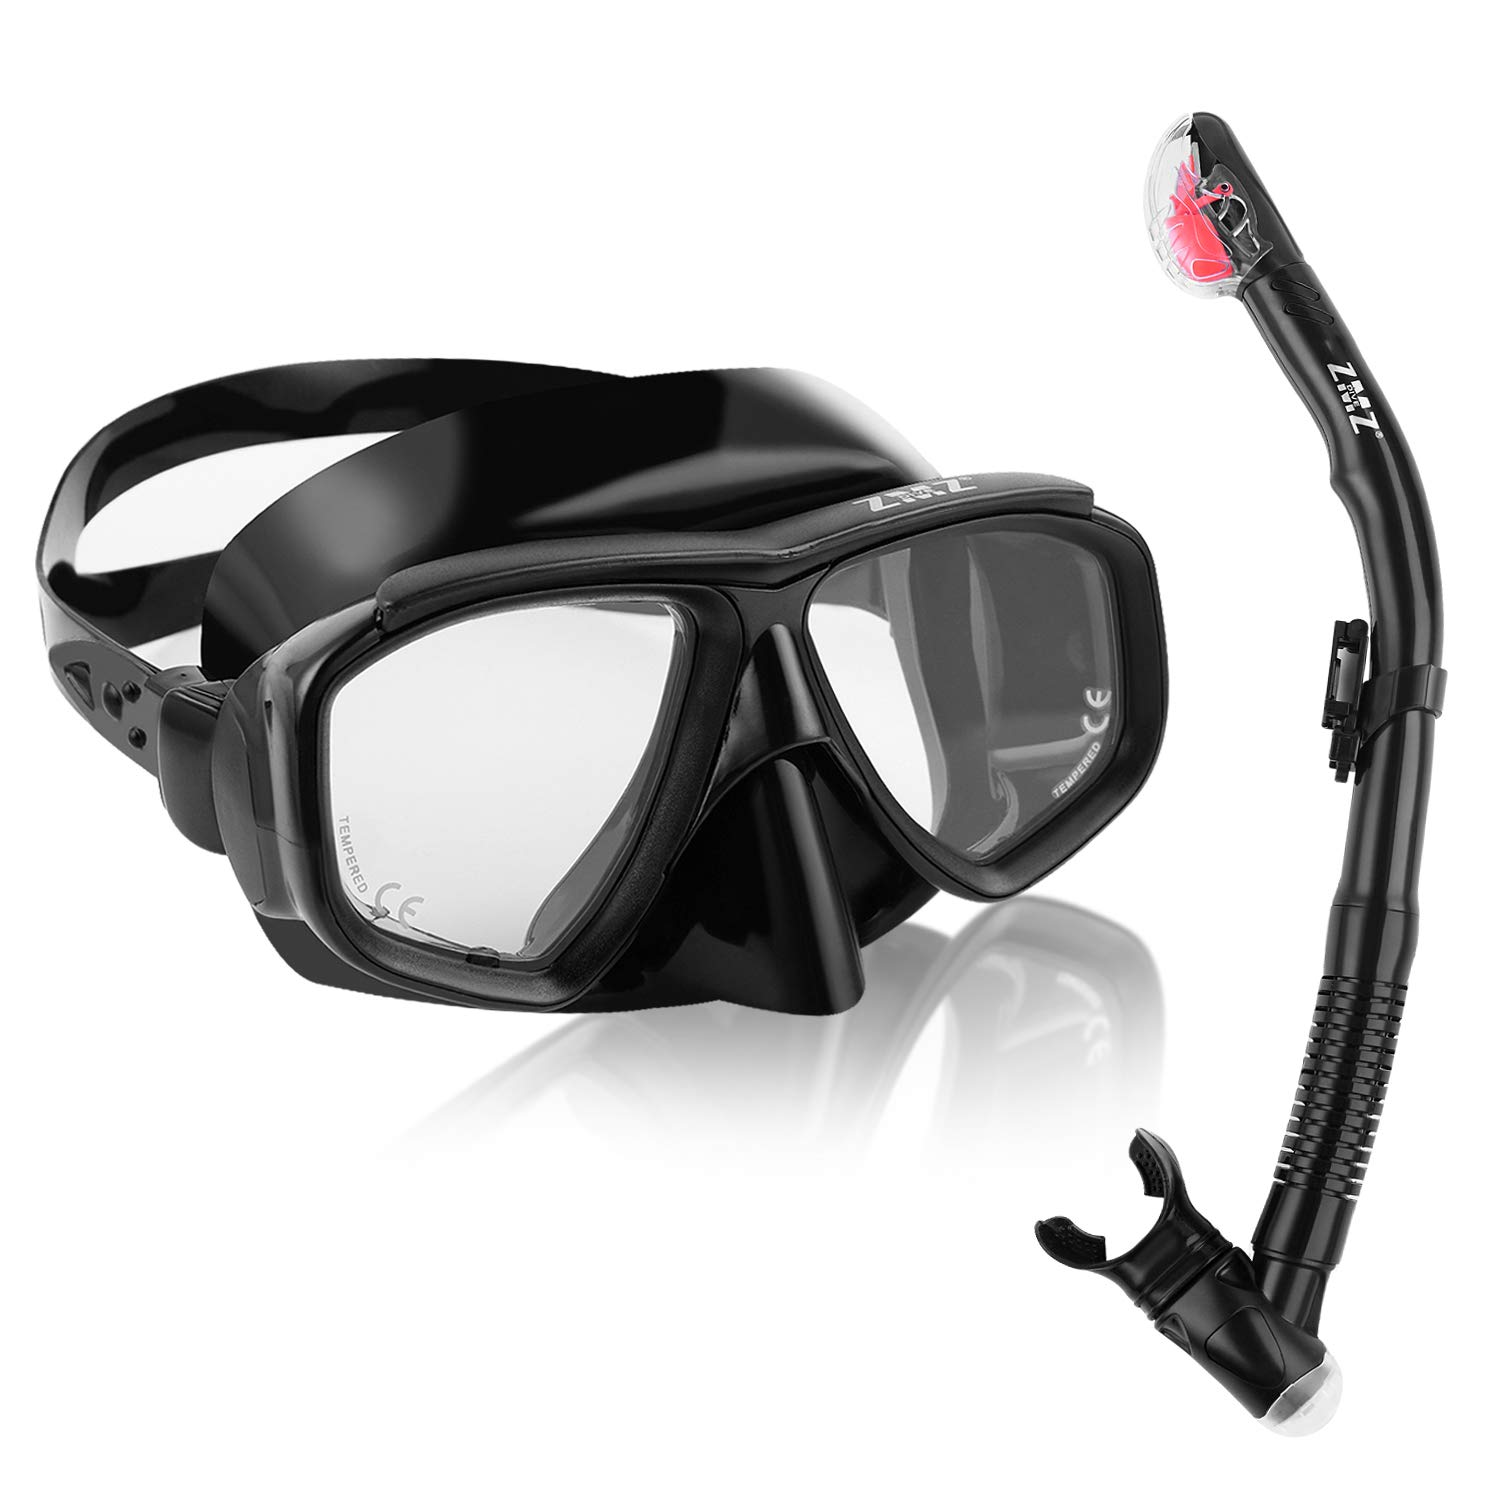 ZMZ DIVE Adult Snorkel Set, Tempered Glass Dry Snorkel, Adjustable Anti-Leak Anti-Fog Design Panoramic Scuba Mask, Top Snorkel with Food-Grade Silicone for Freediving Snorkeling (Black) by ZMZ DIVE